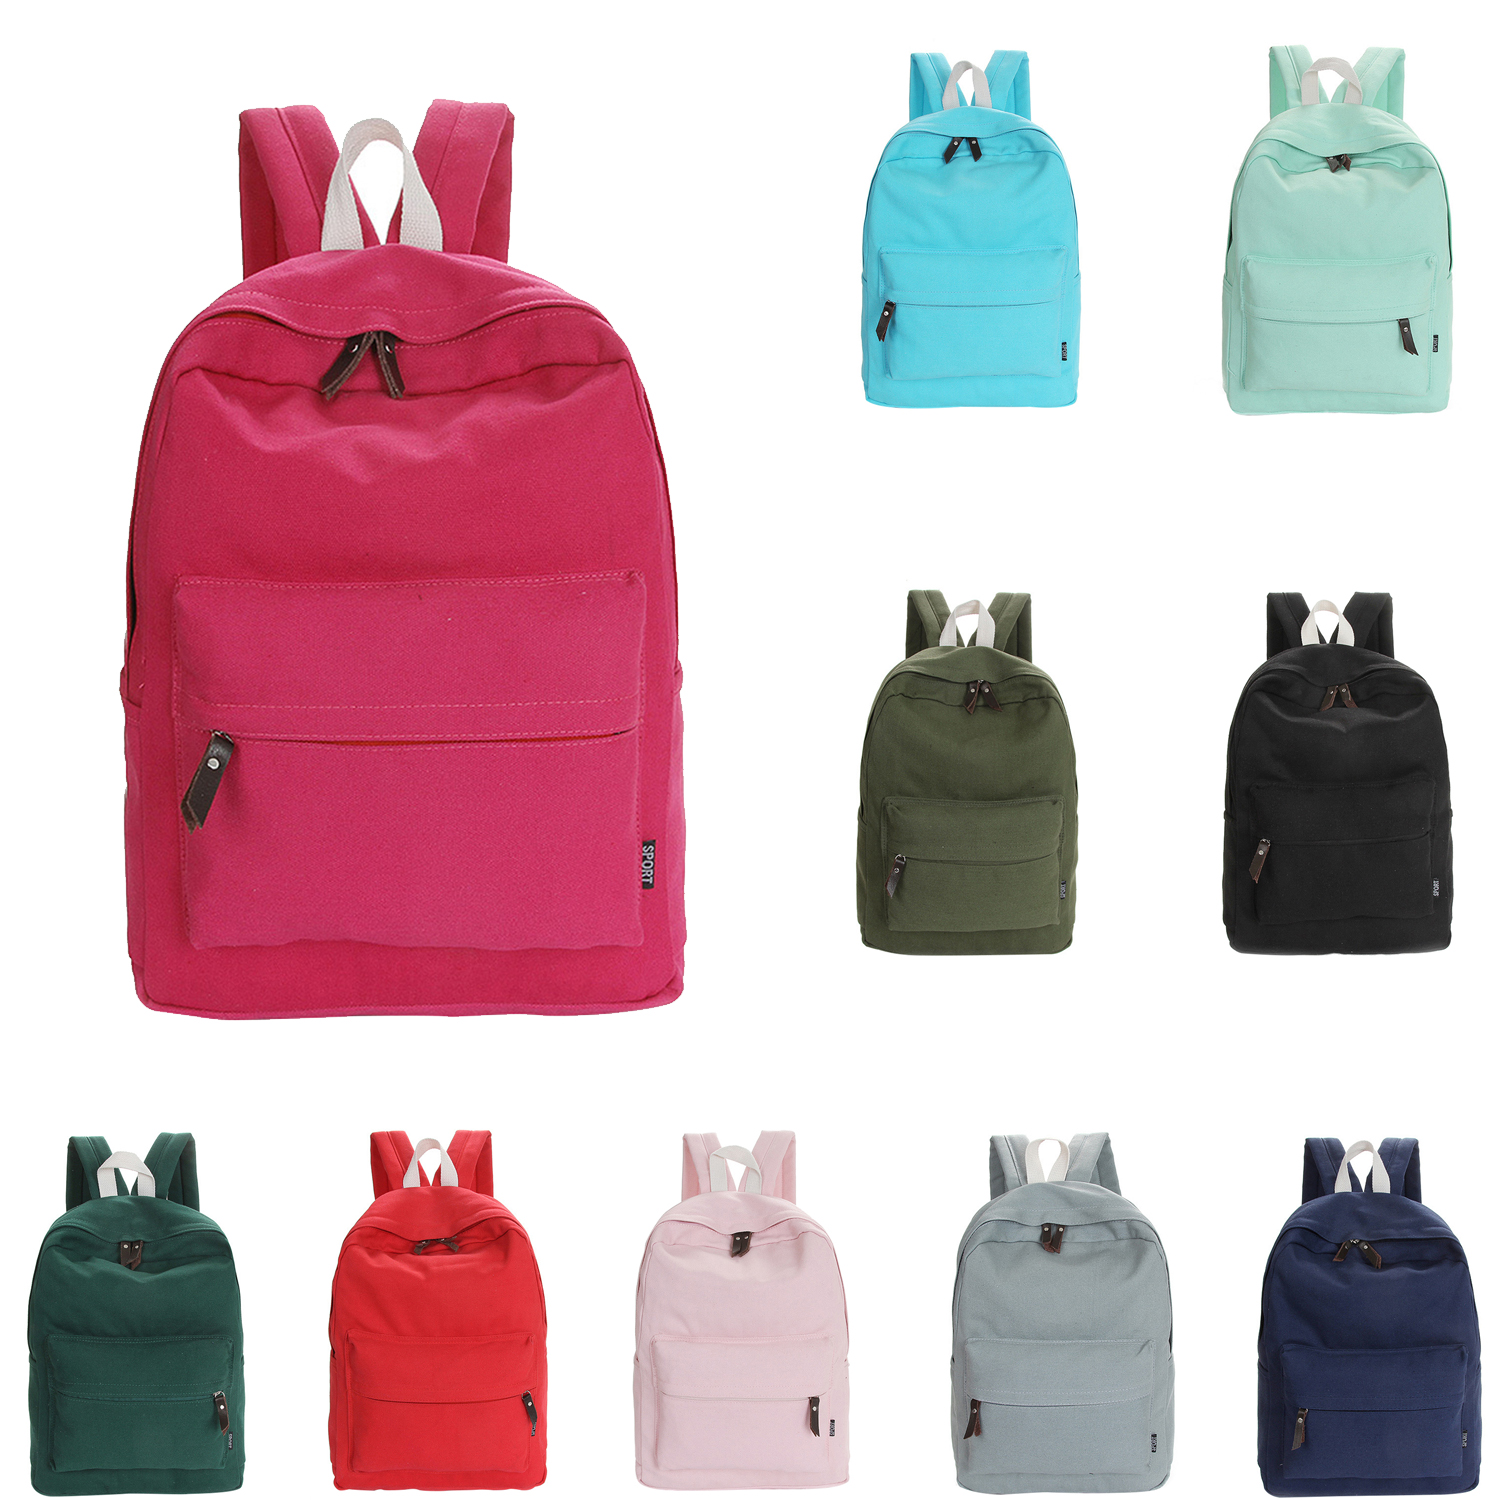 7e8768fe9 Details about 2X(Casual Canvas Backpack Fashion school bag for girls and  boys unisex back B6G8